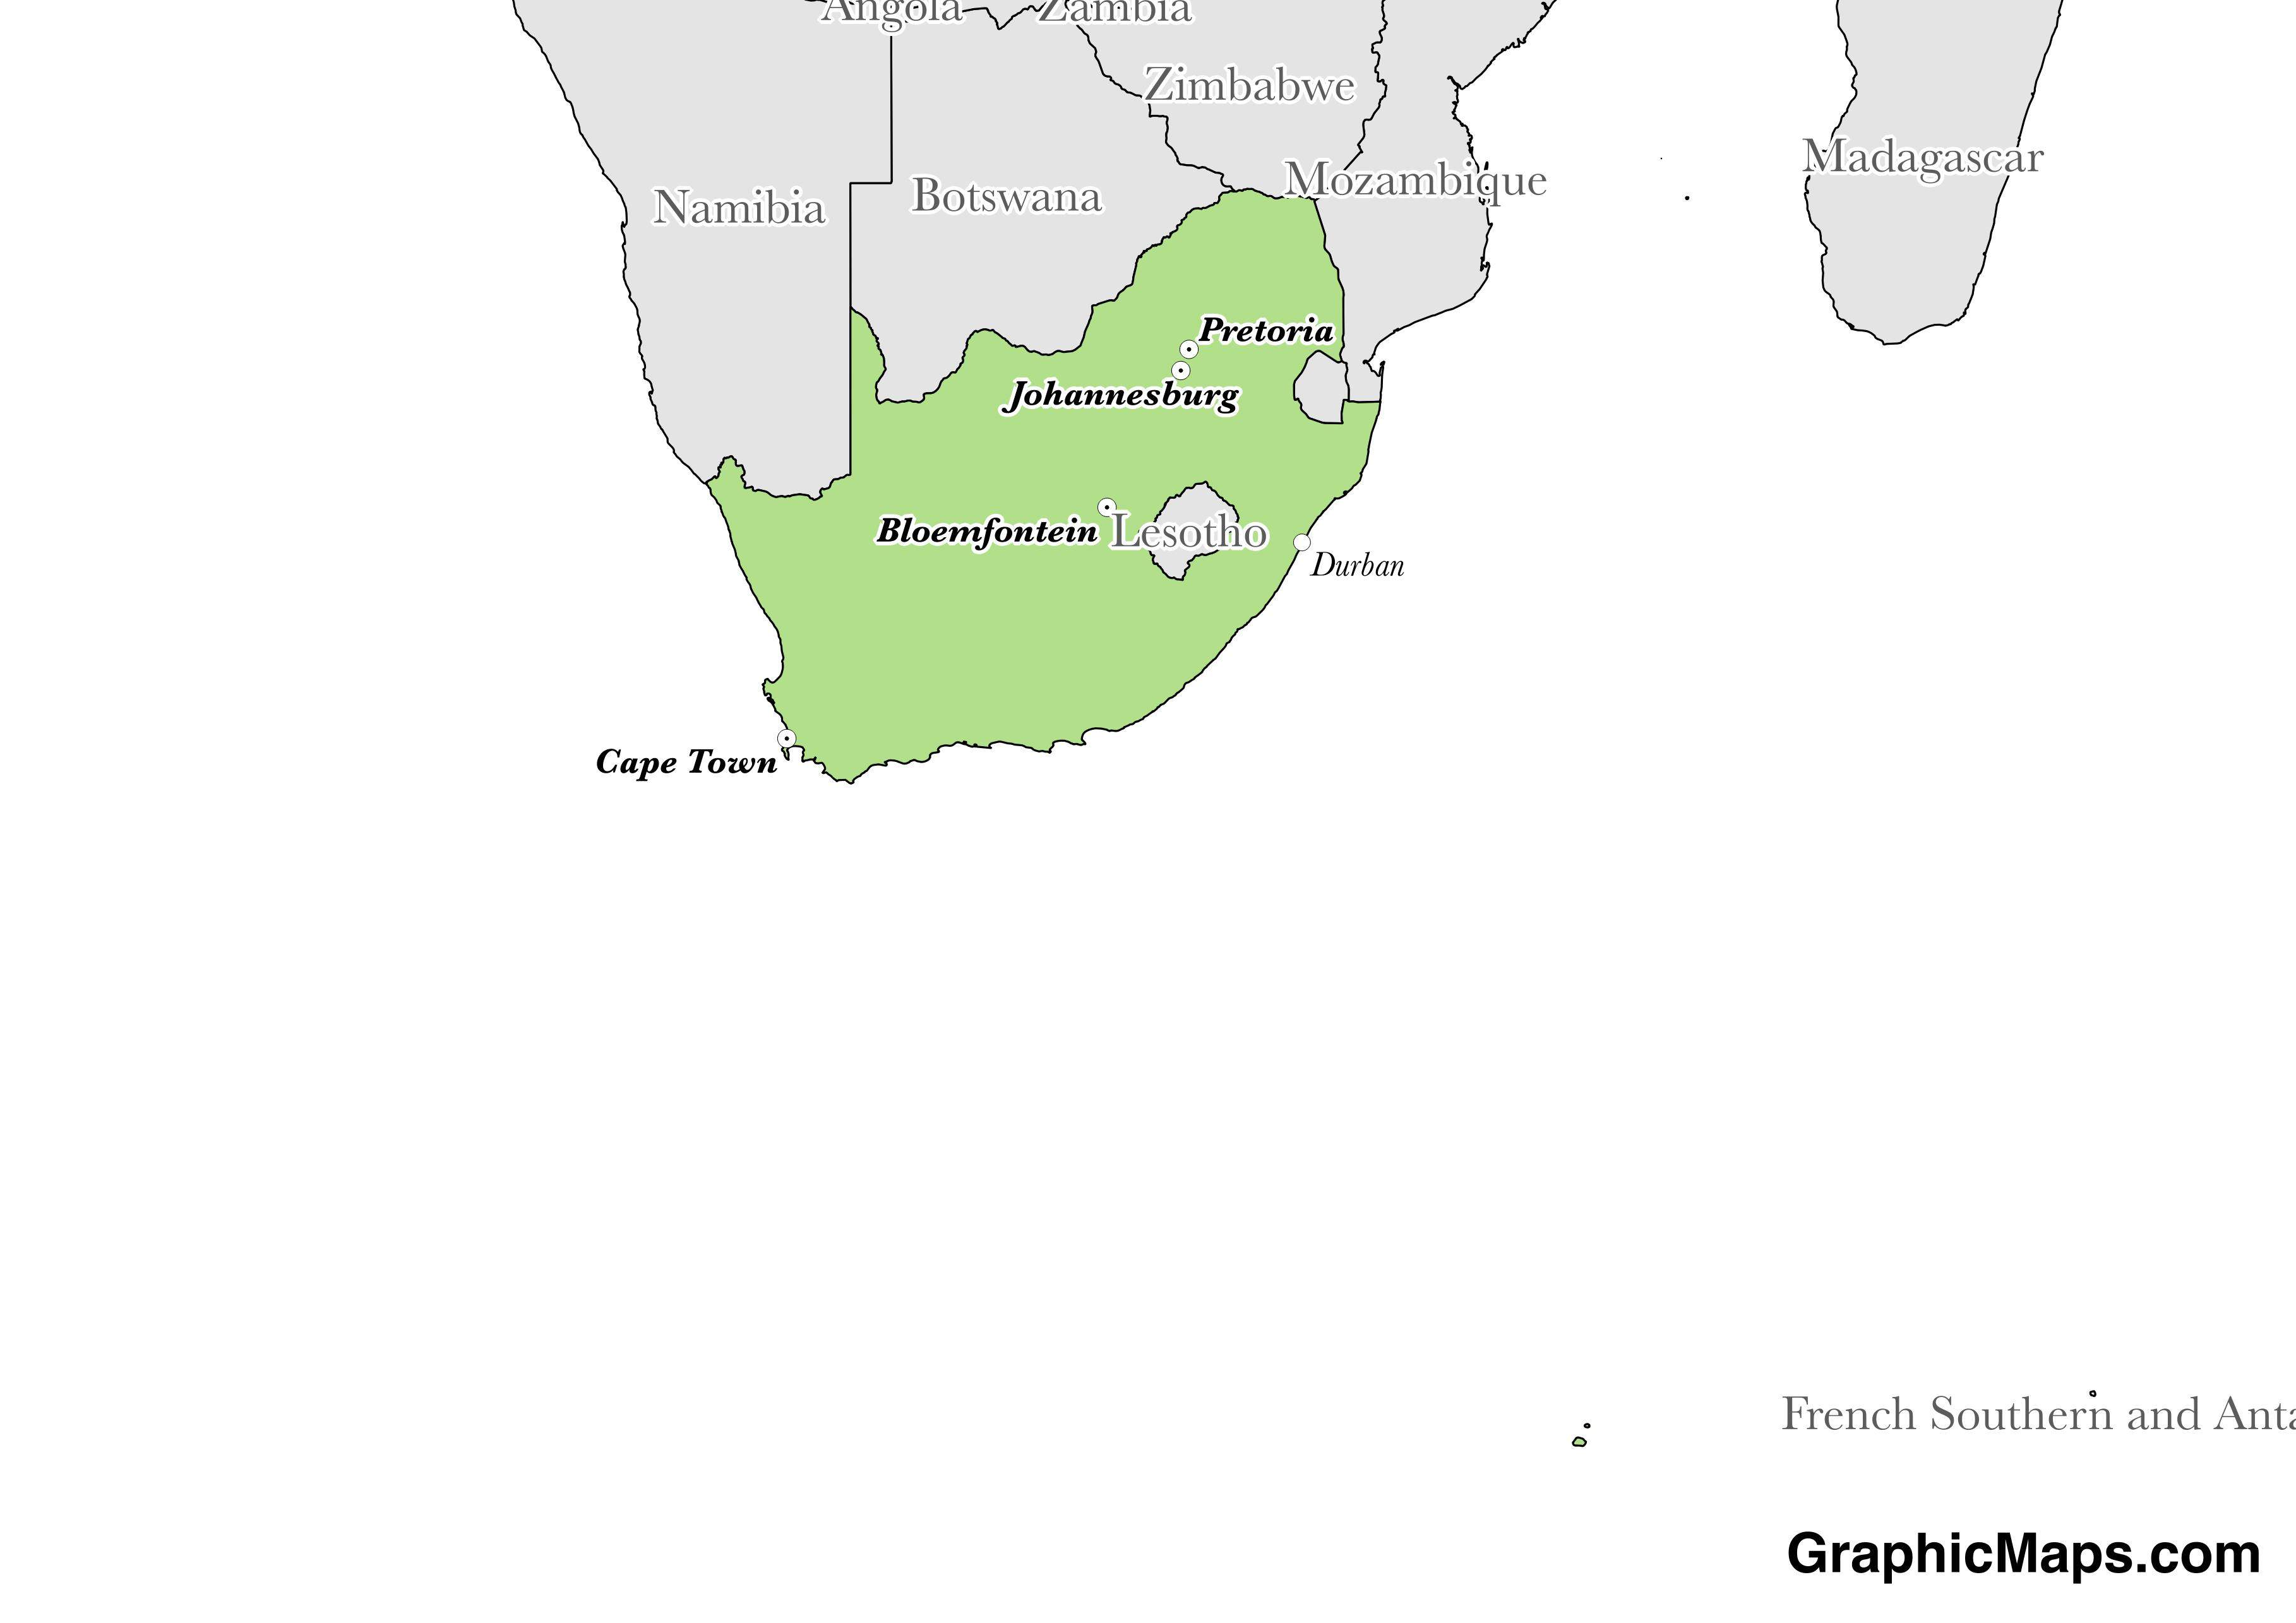 Map showing the location of South Africa